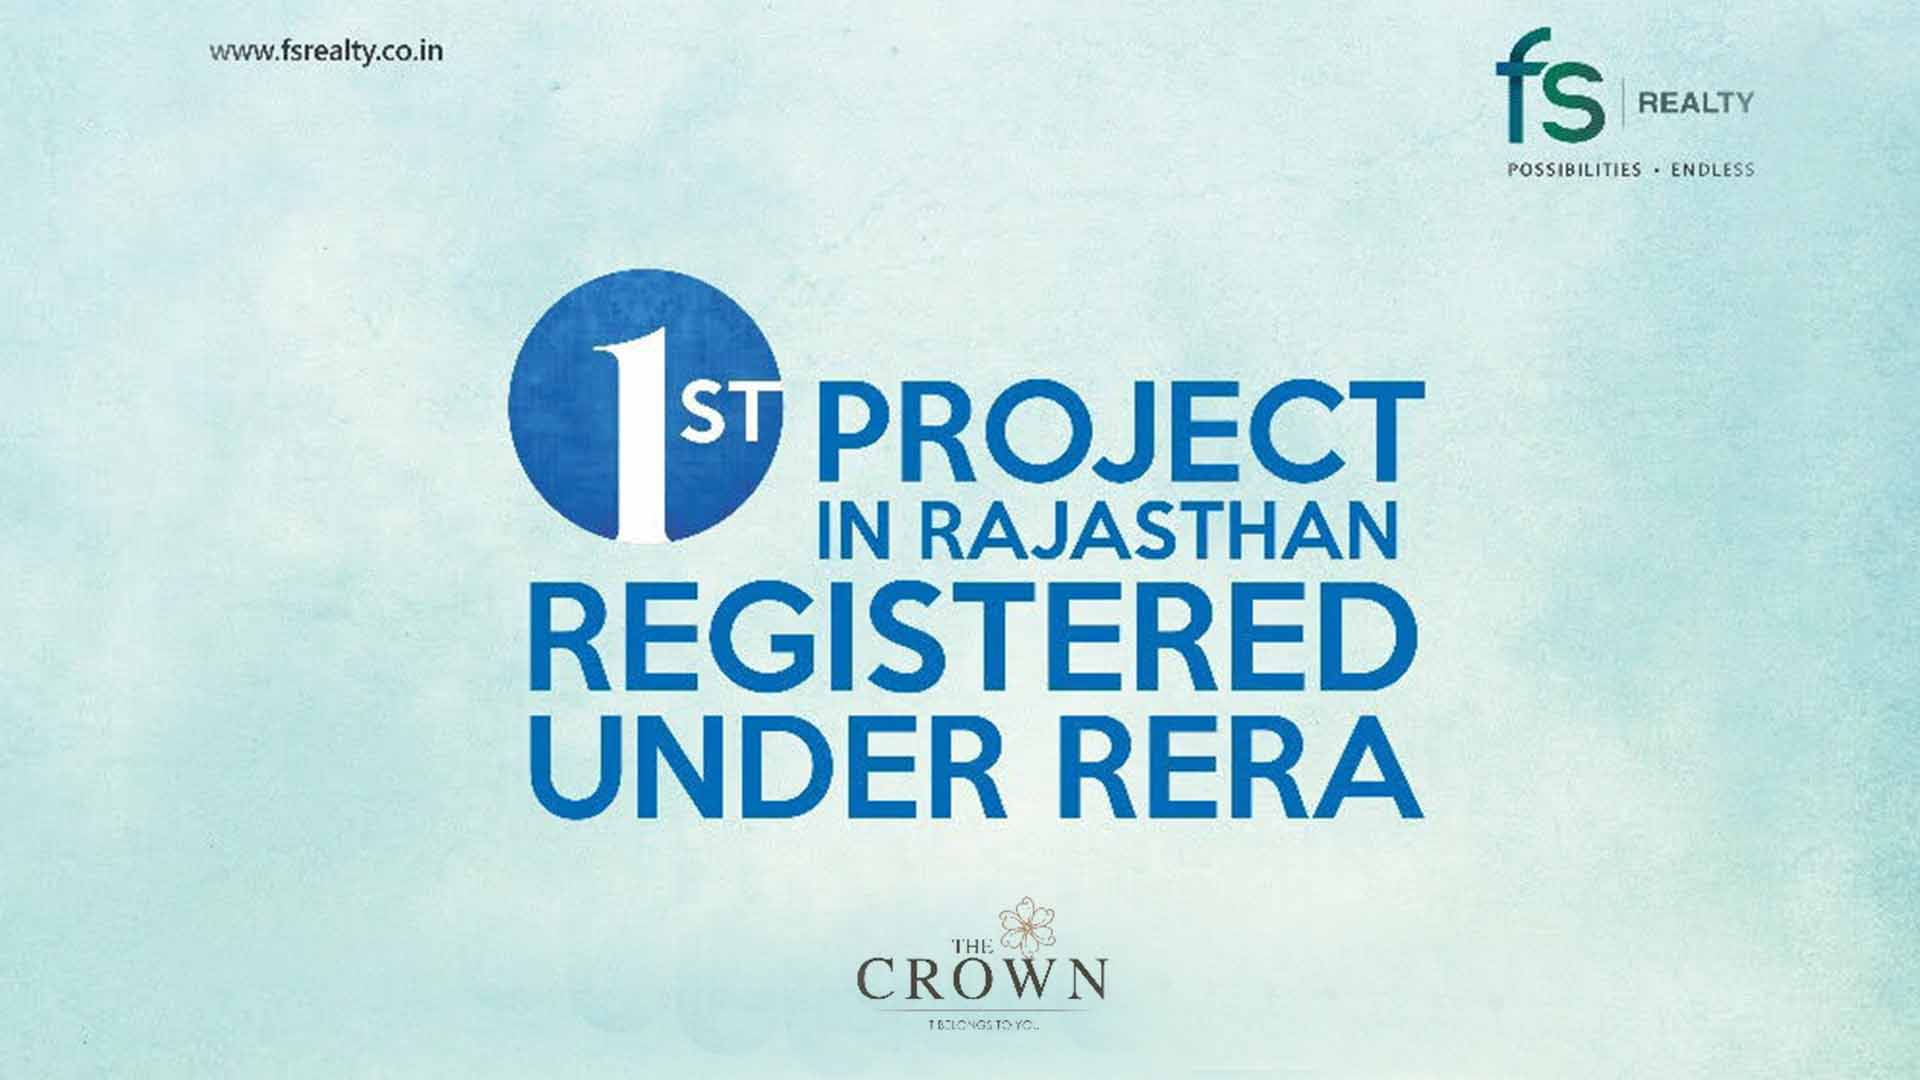 FS Realty Becomes The First Developer In Rajasthan To Get RERA Compliant Project